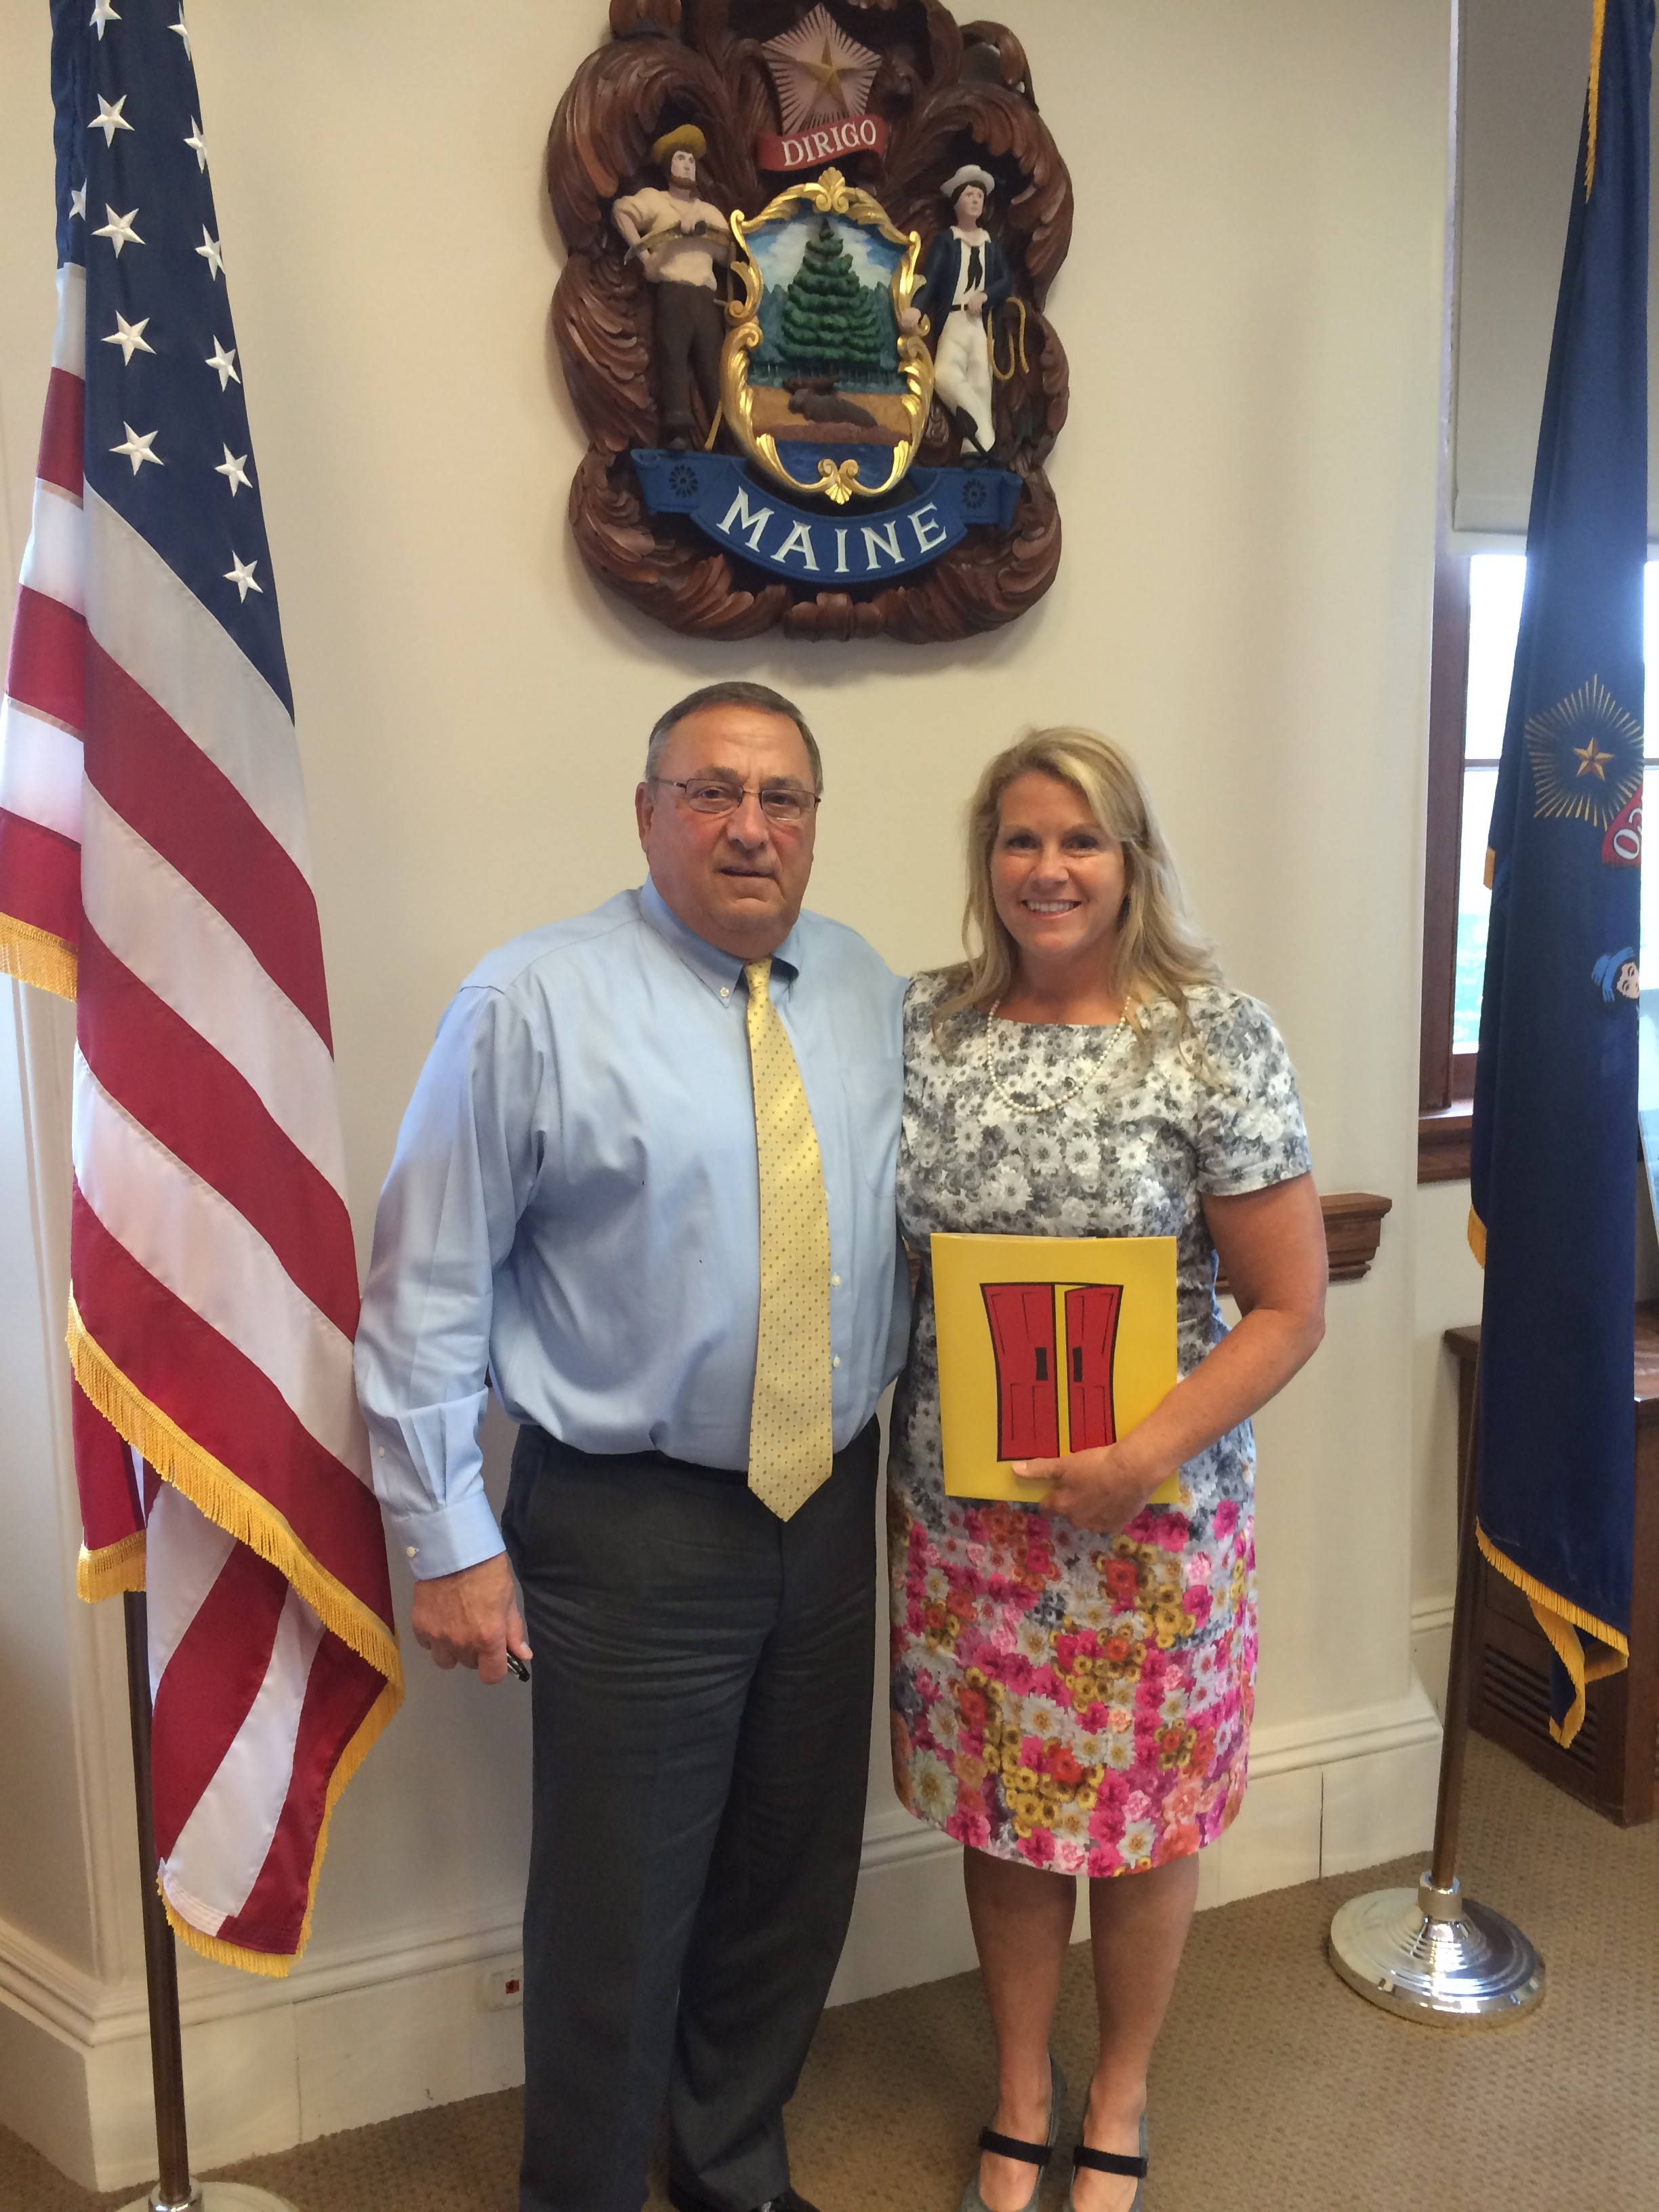 MPTC Honored in the State Capital